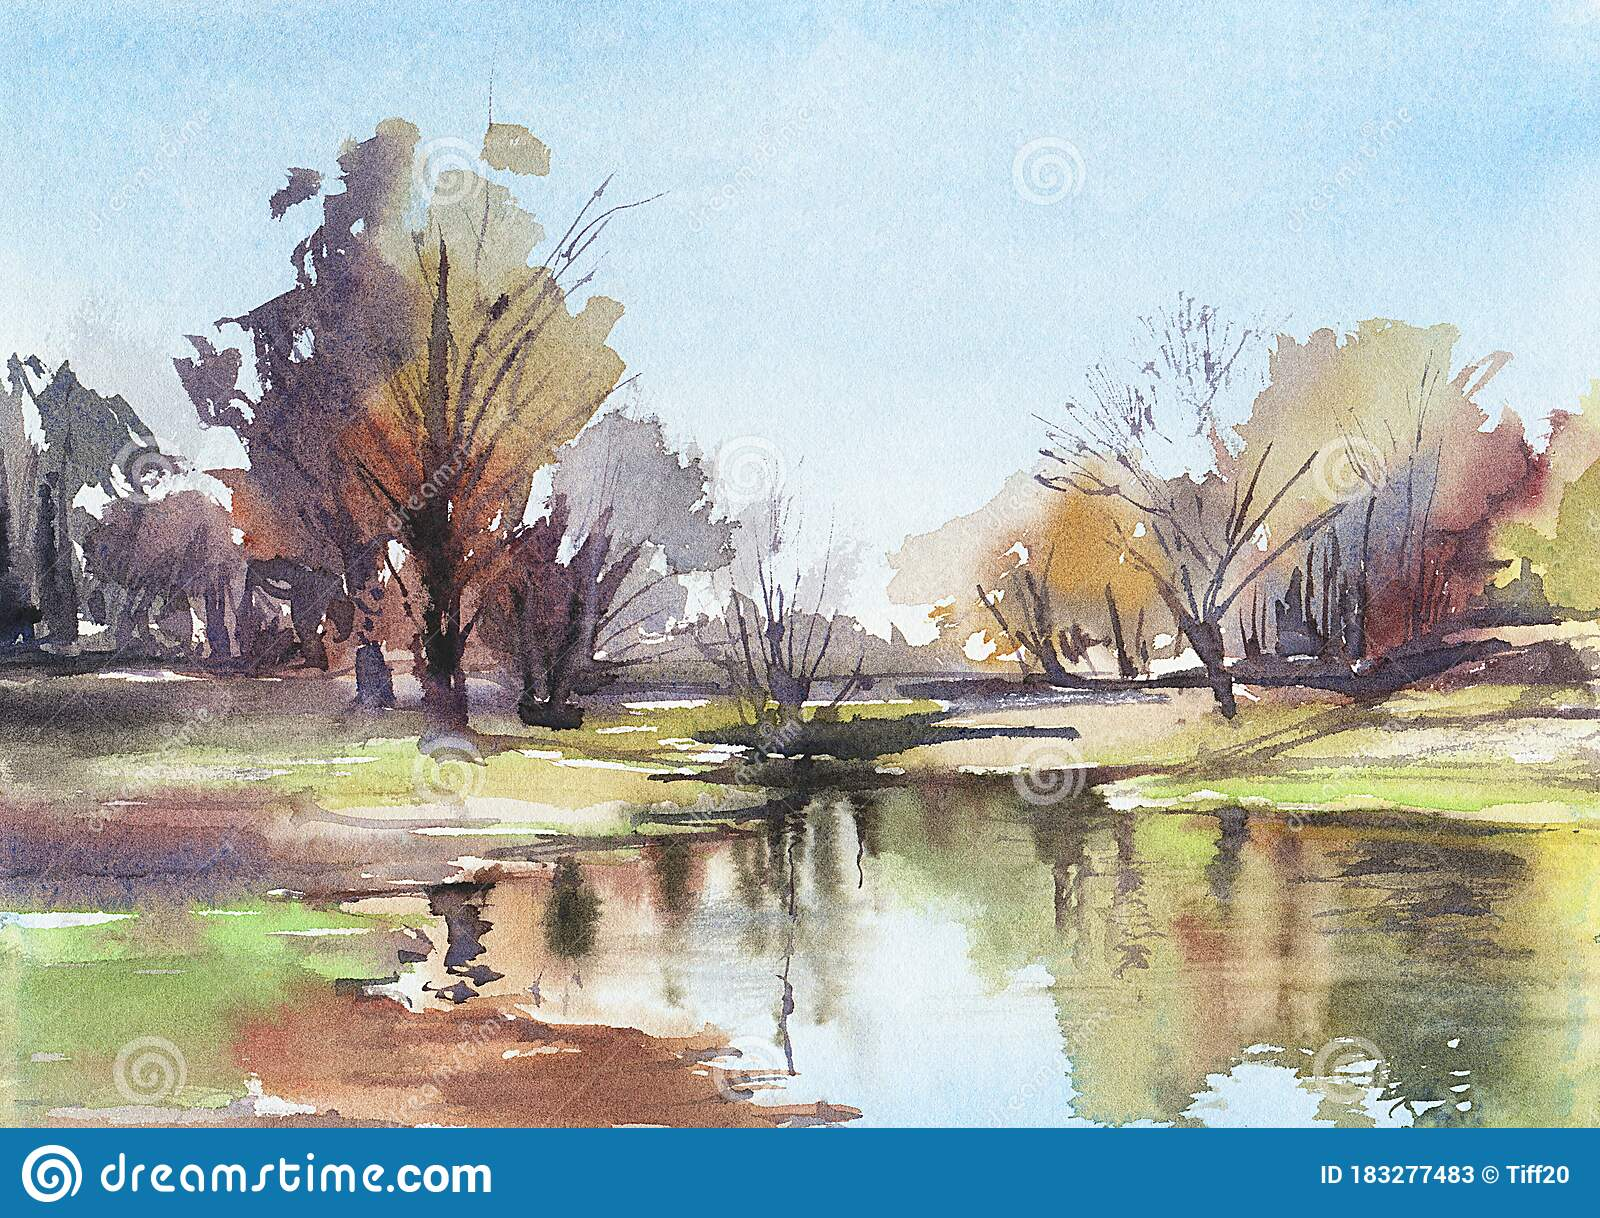 Autumn Landscape Watercolor Drawing Stock Illustration Illustration Of Nature Artist 183277483